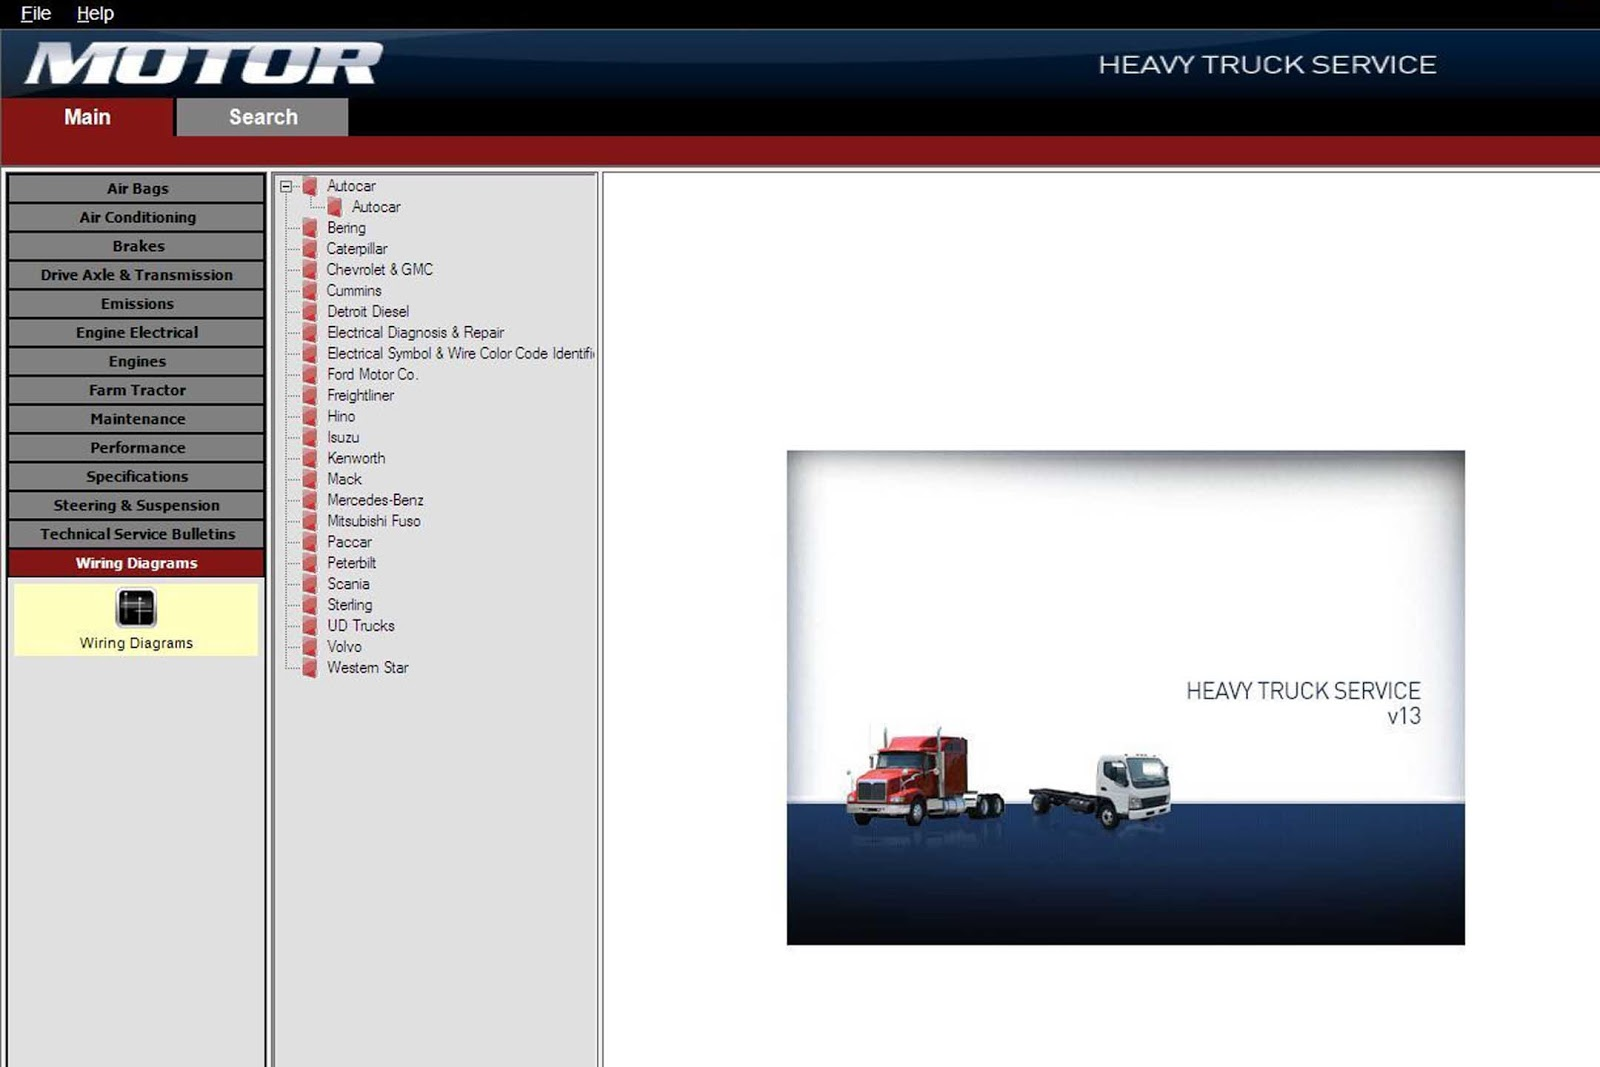 Flasdisk 64 Gb Motor Heavy Truck Service V13 Virtualbox Image Hino Engine Diagrams